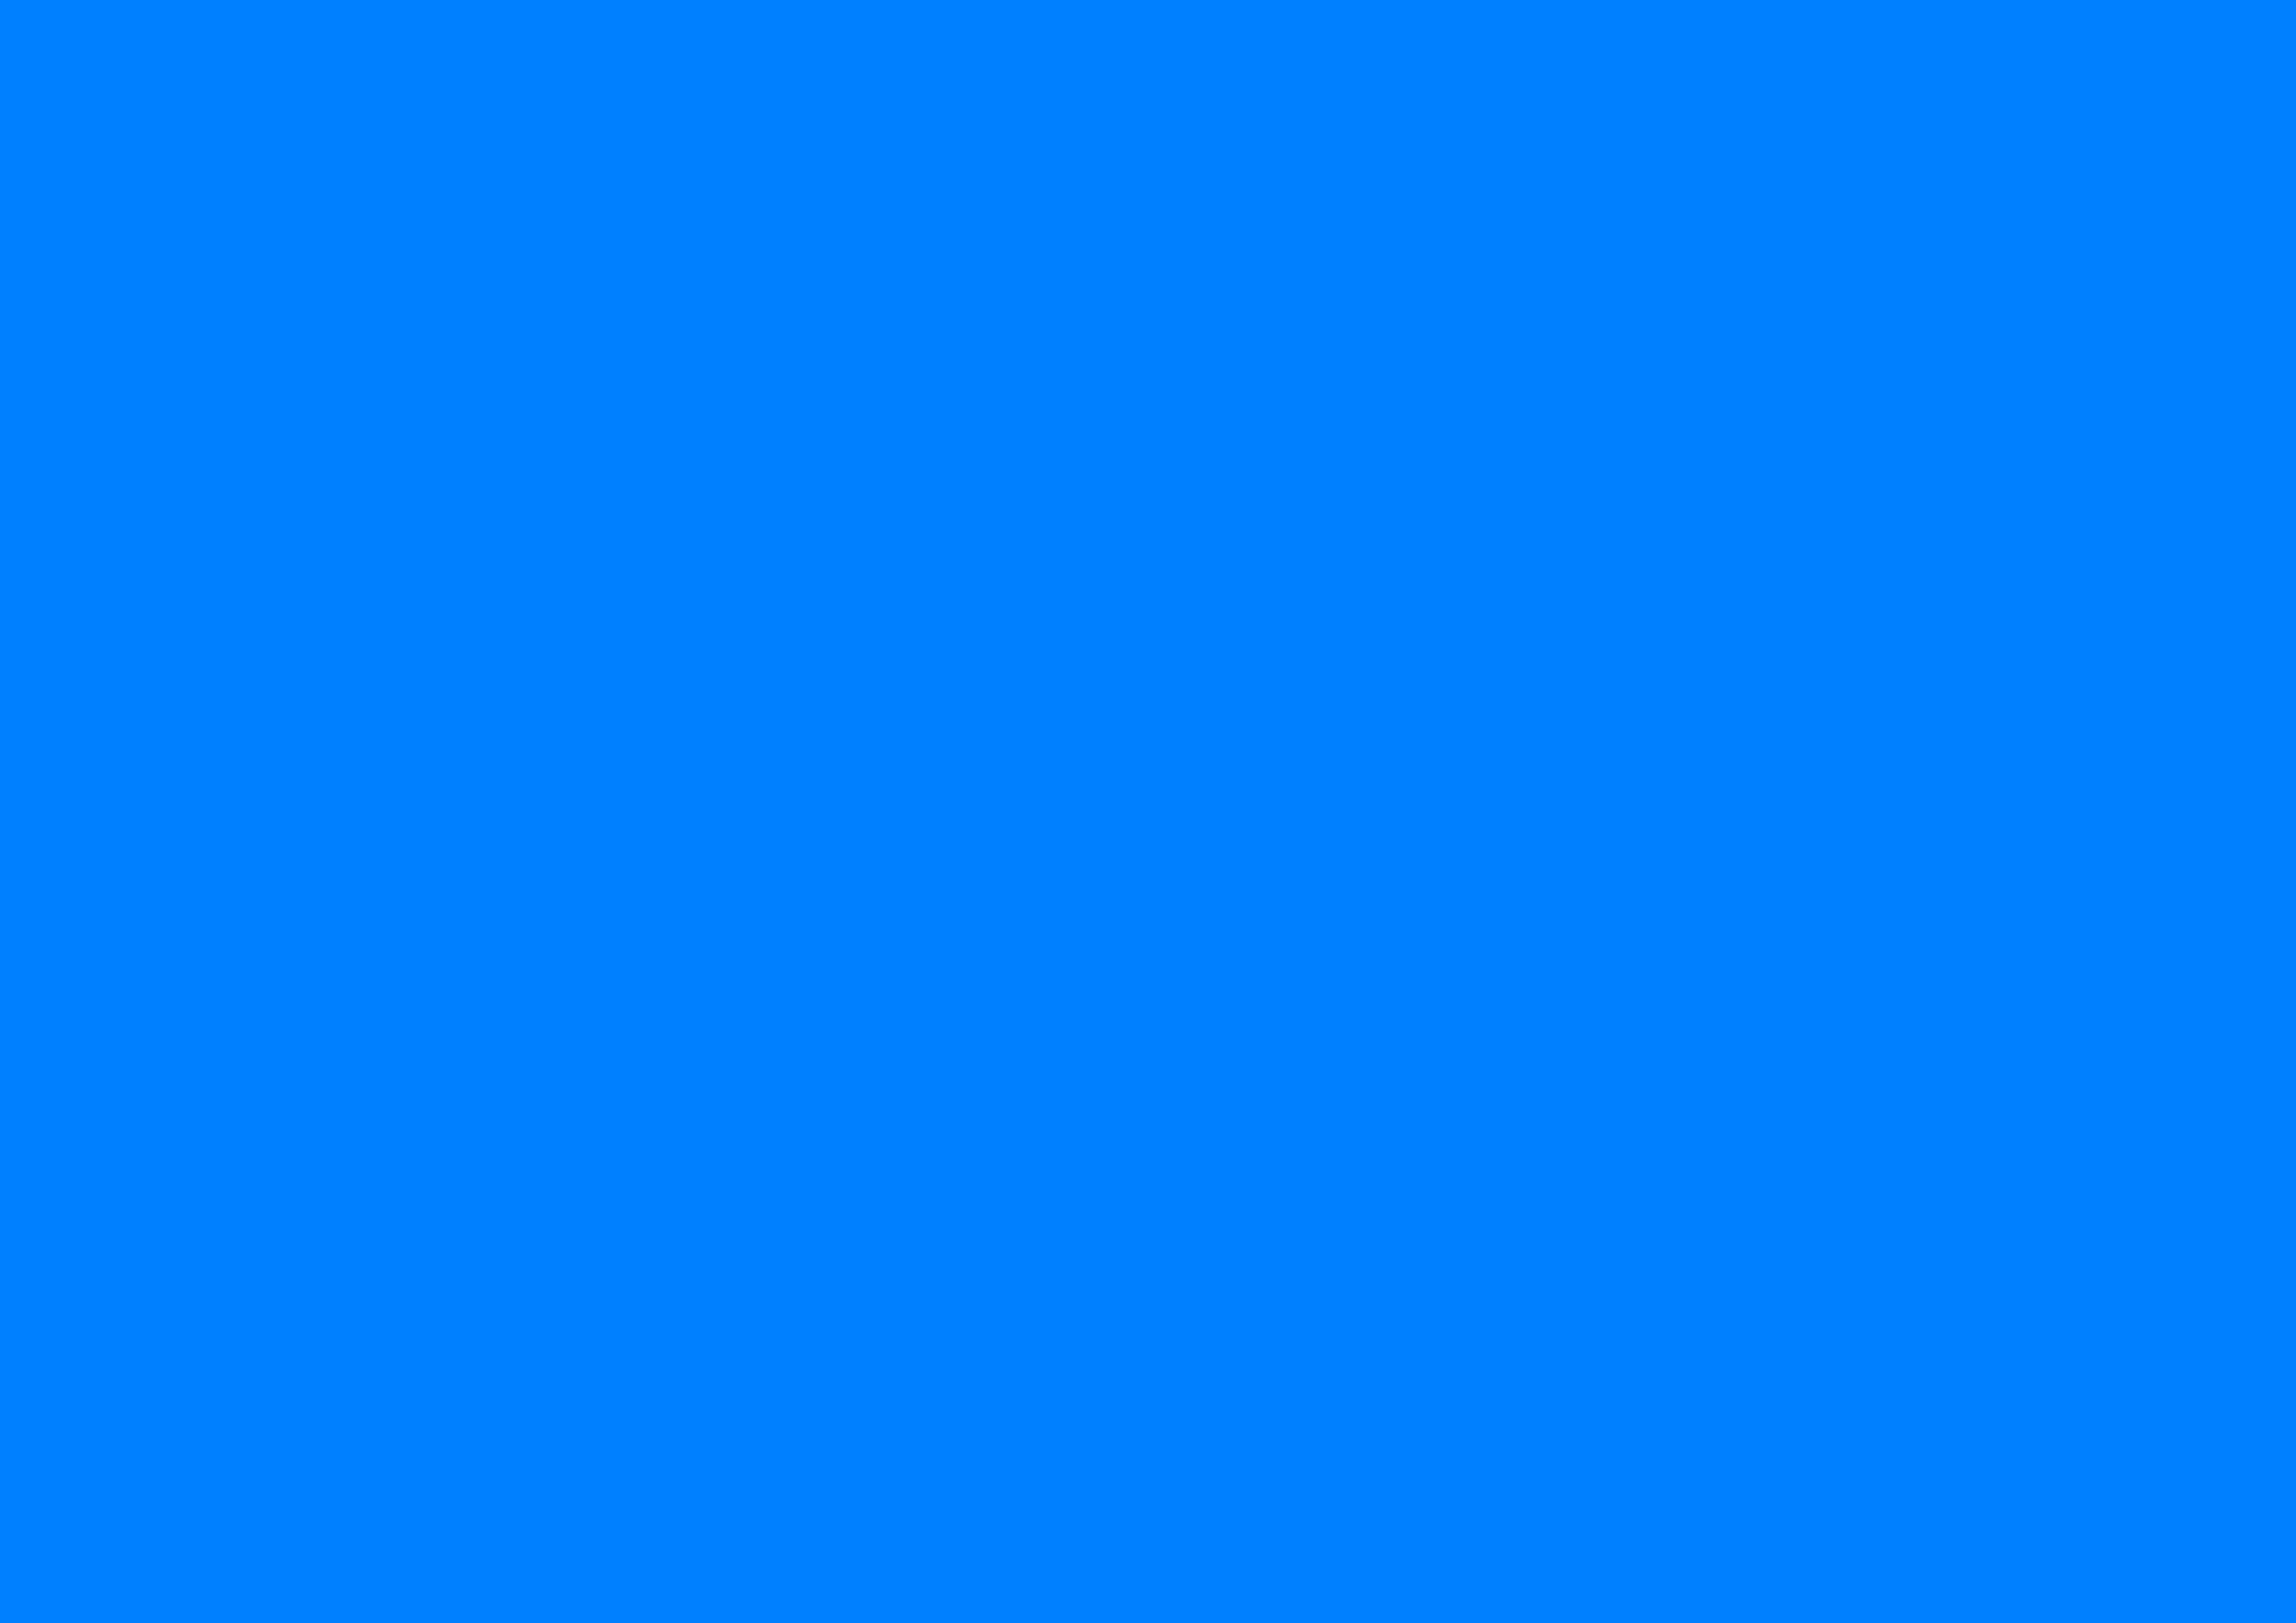 3508x2480 Azure Solid Color Background